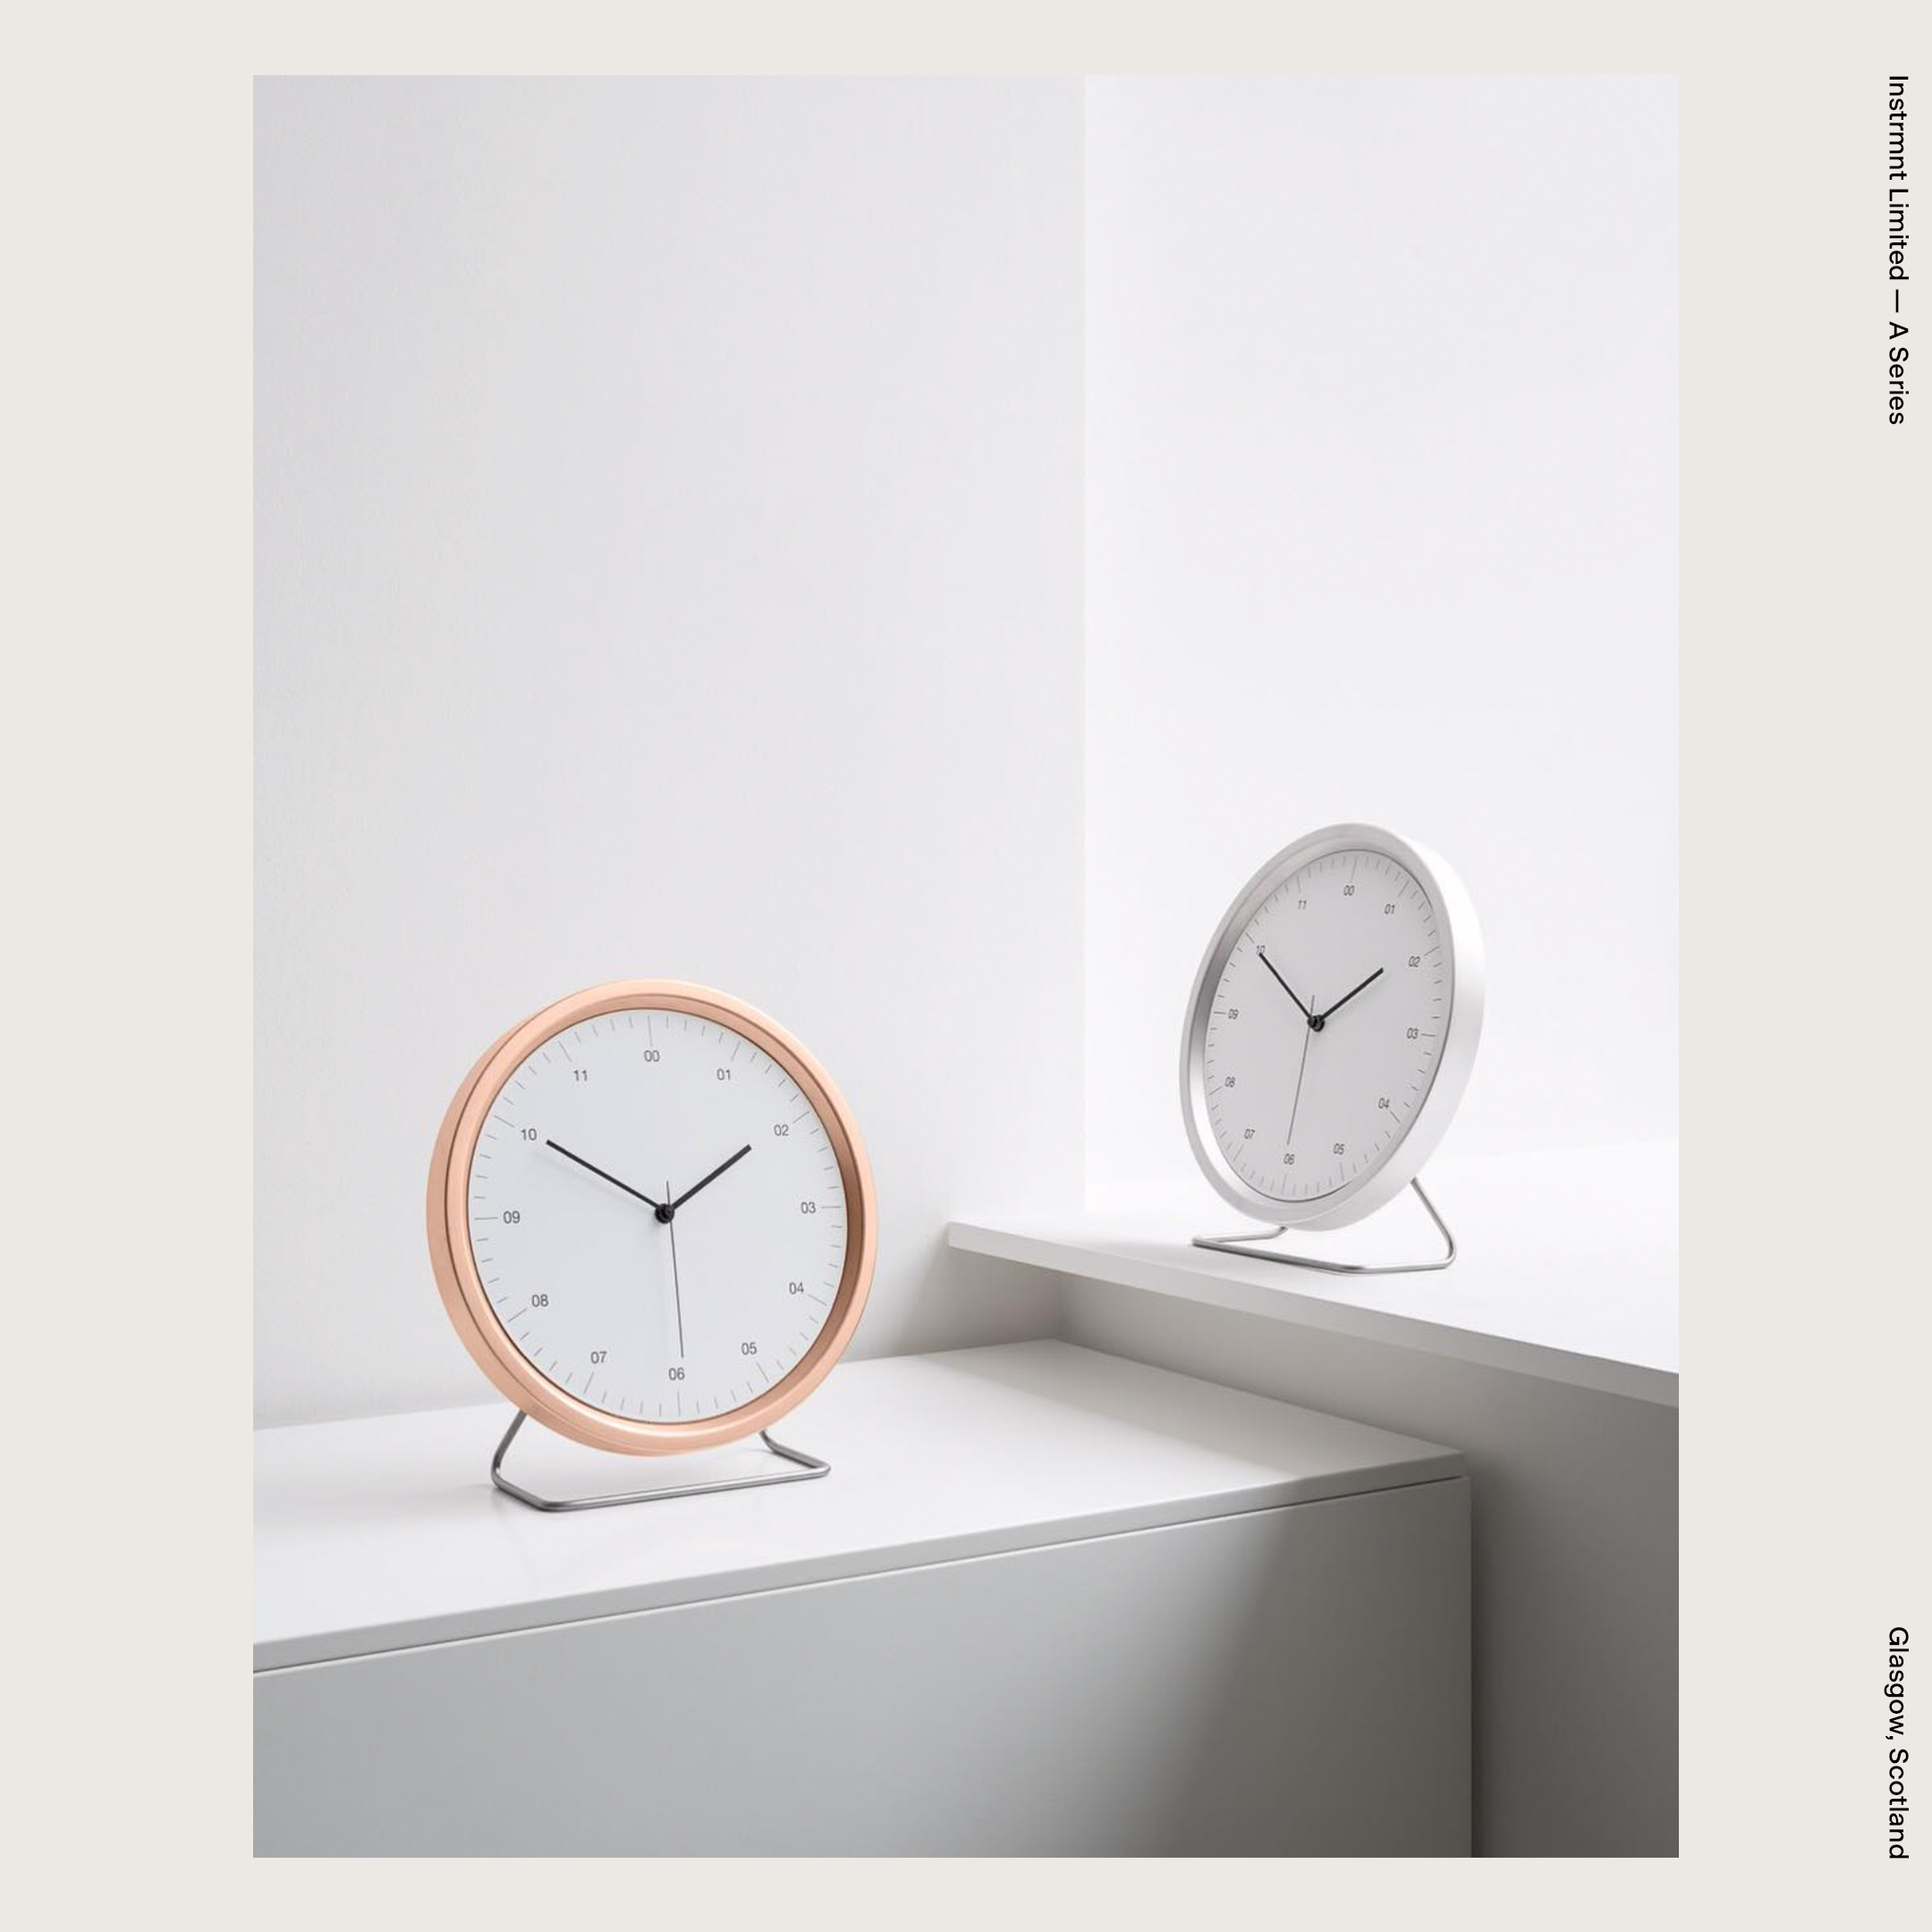 Instrmnt Limited — A Series